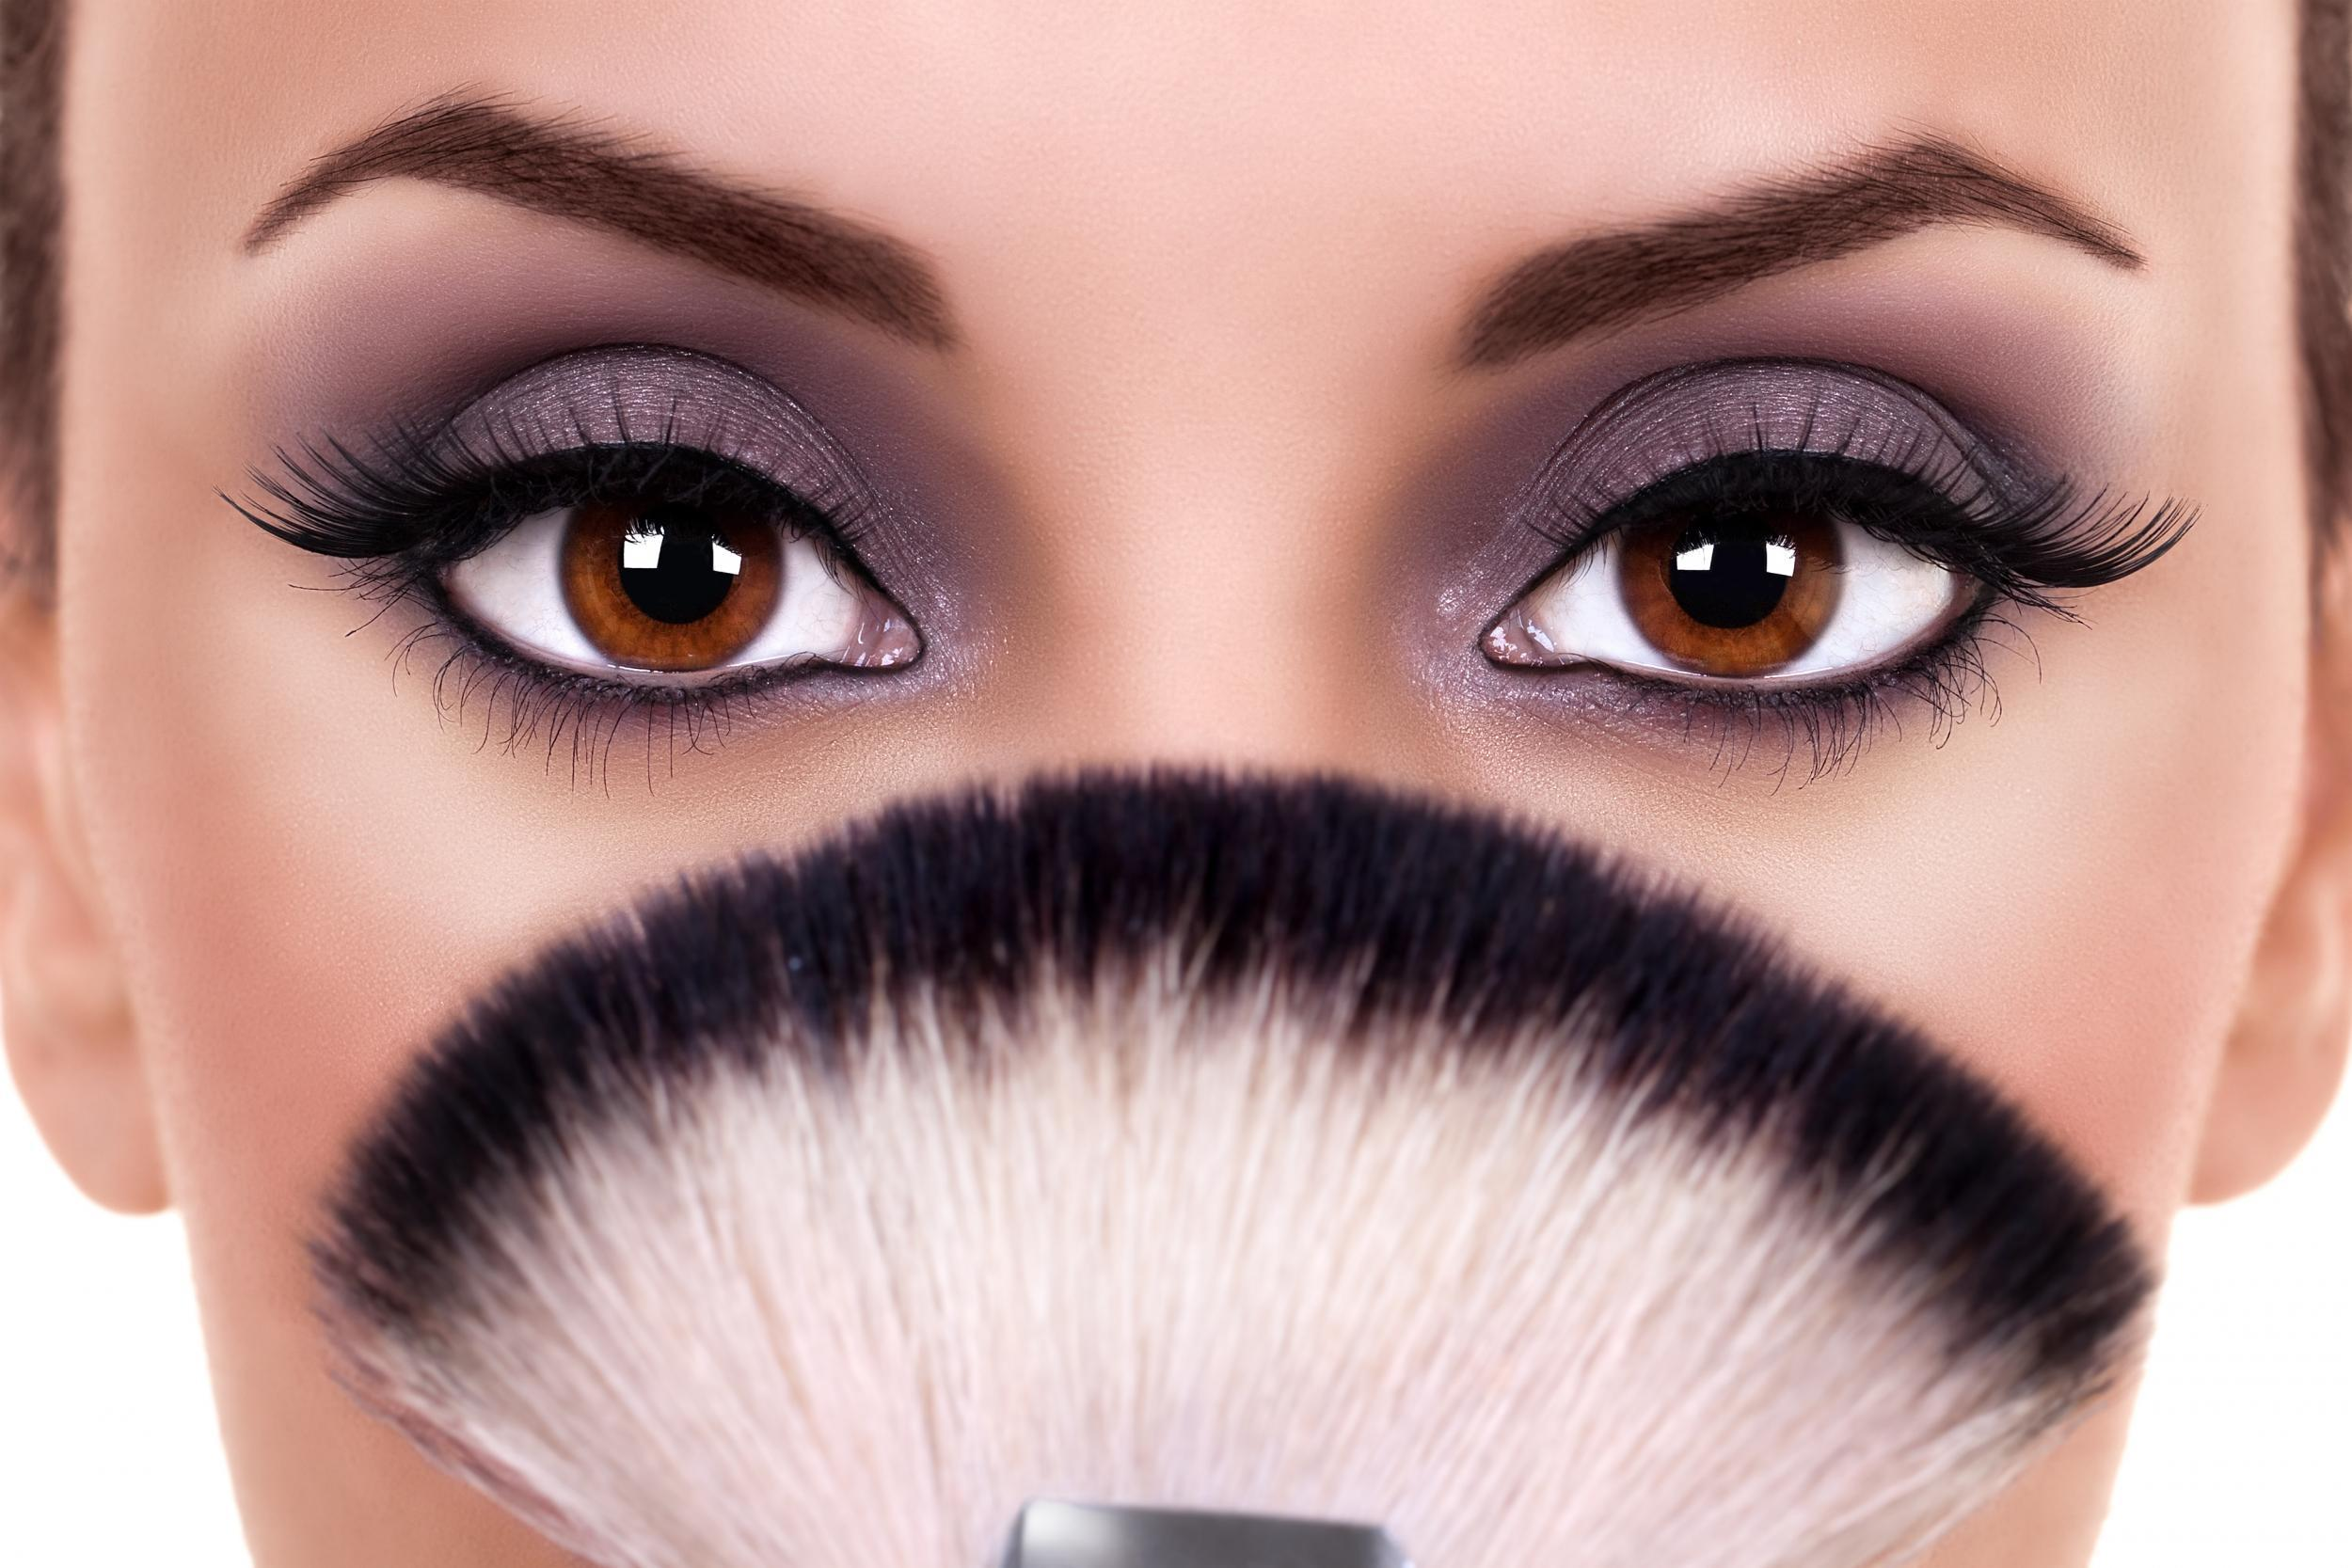 Lash out: How to master the no mascara makeup trend | The Independent